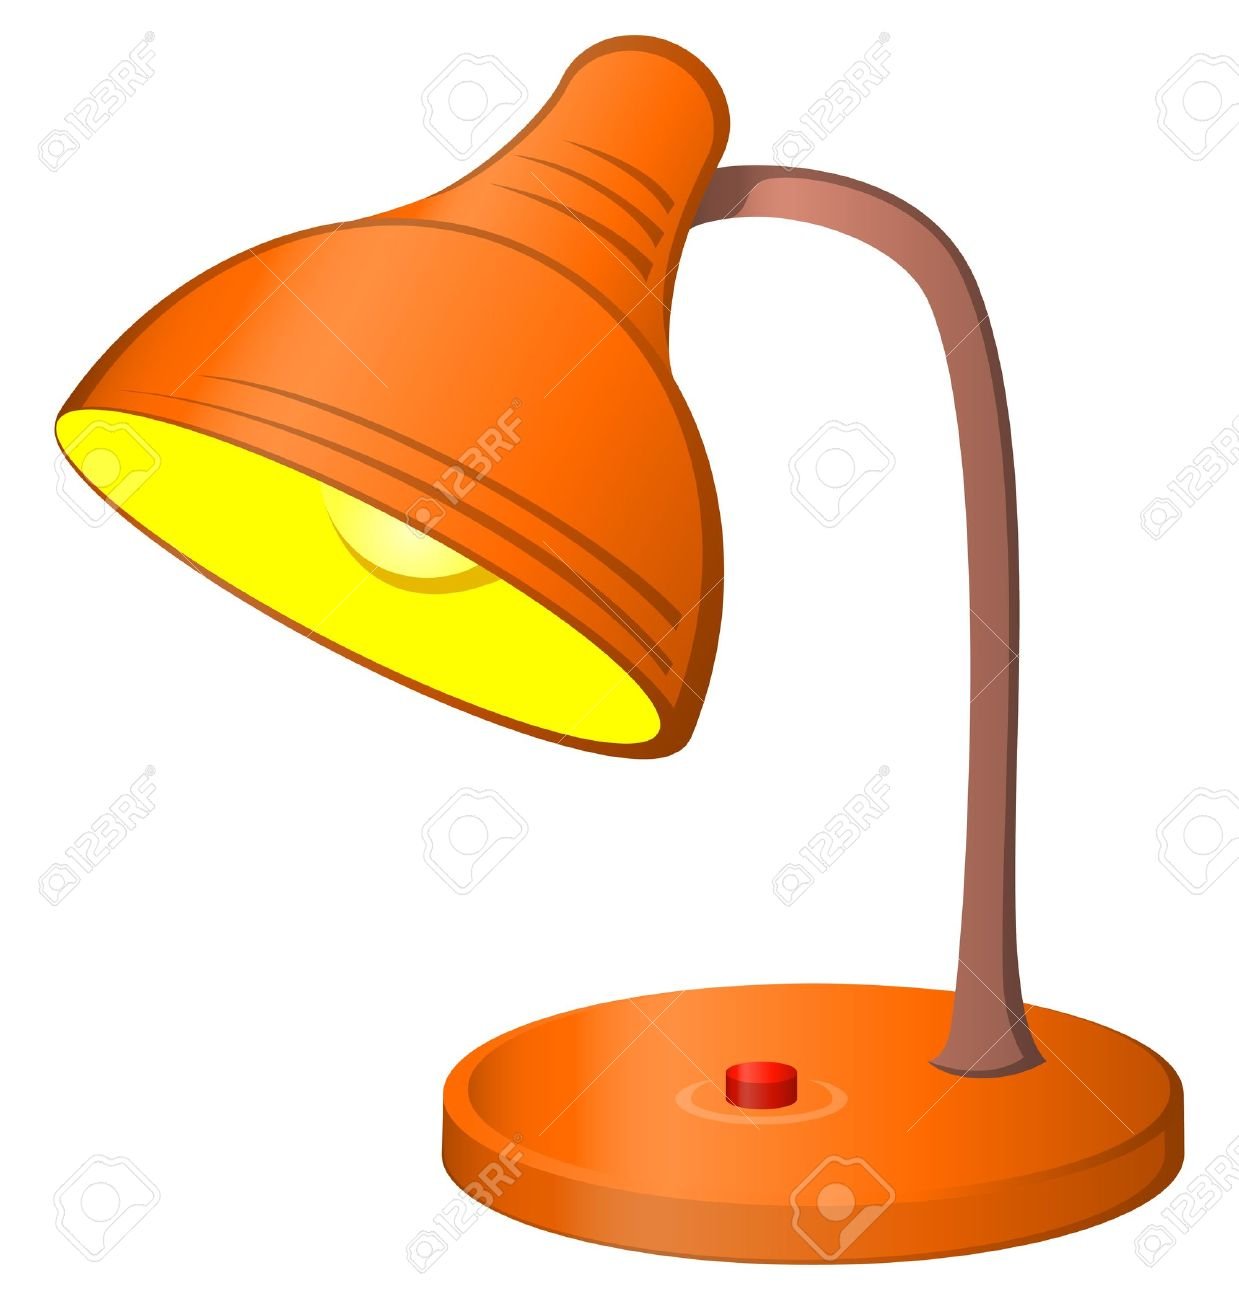 Lamp Clipart | Free download best Lamp Clipart on ClipArtMag.com for Desk Lamp Clipart  75sfw